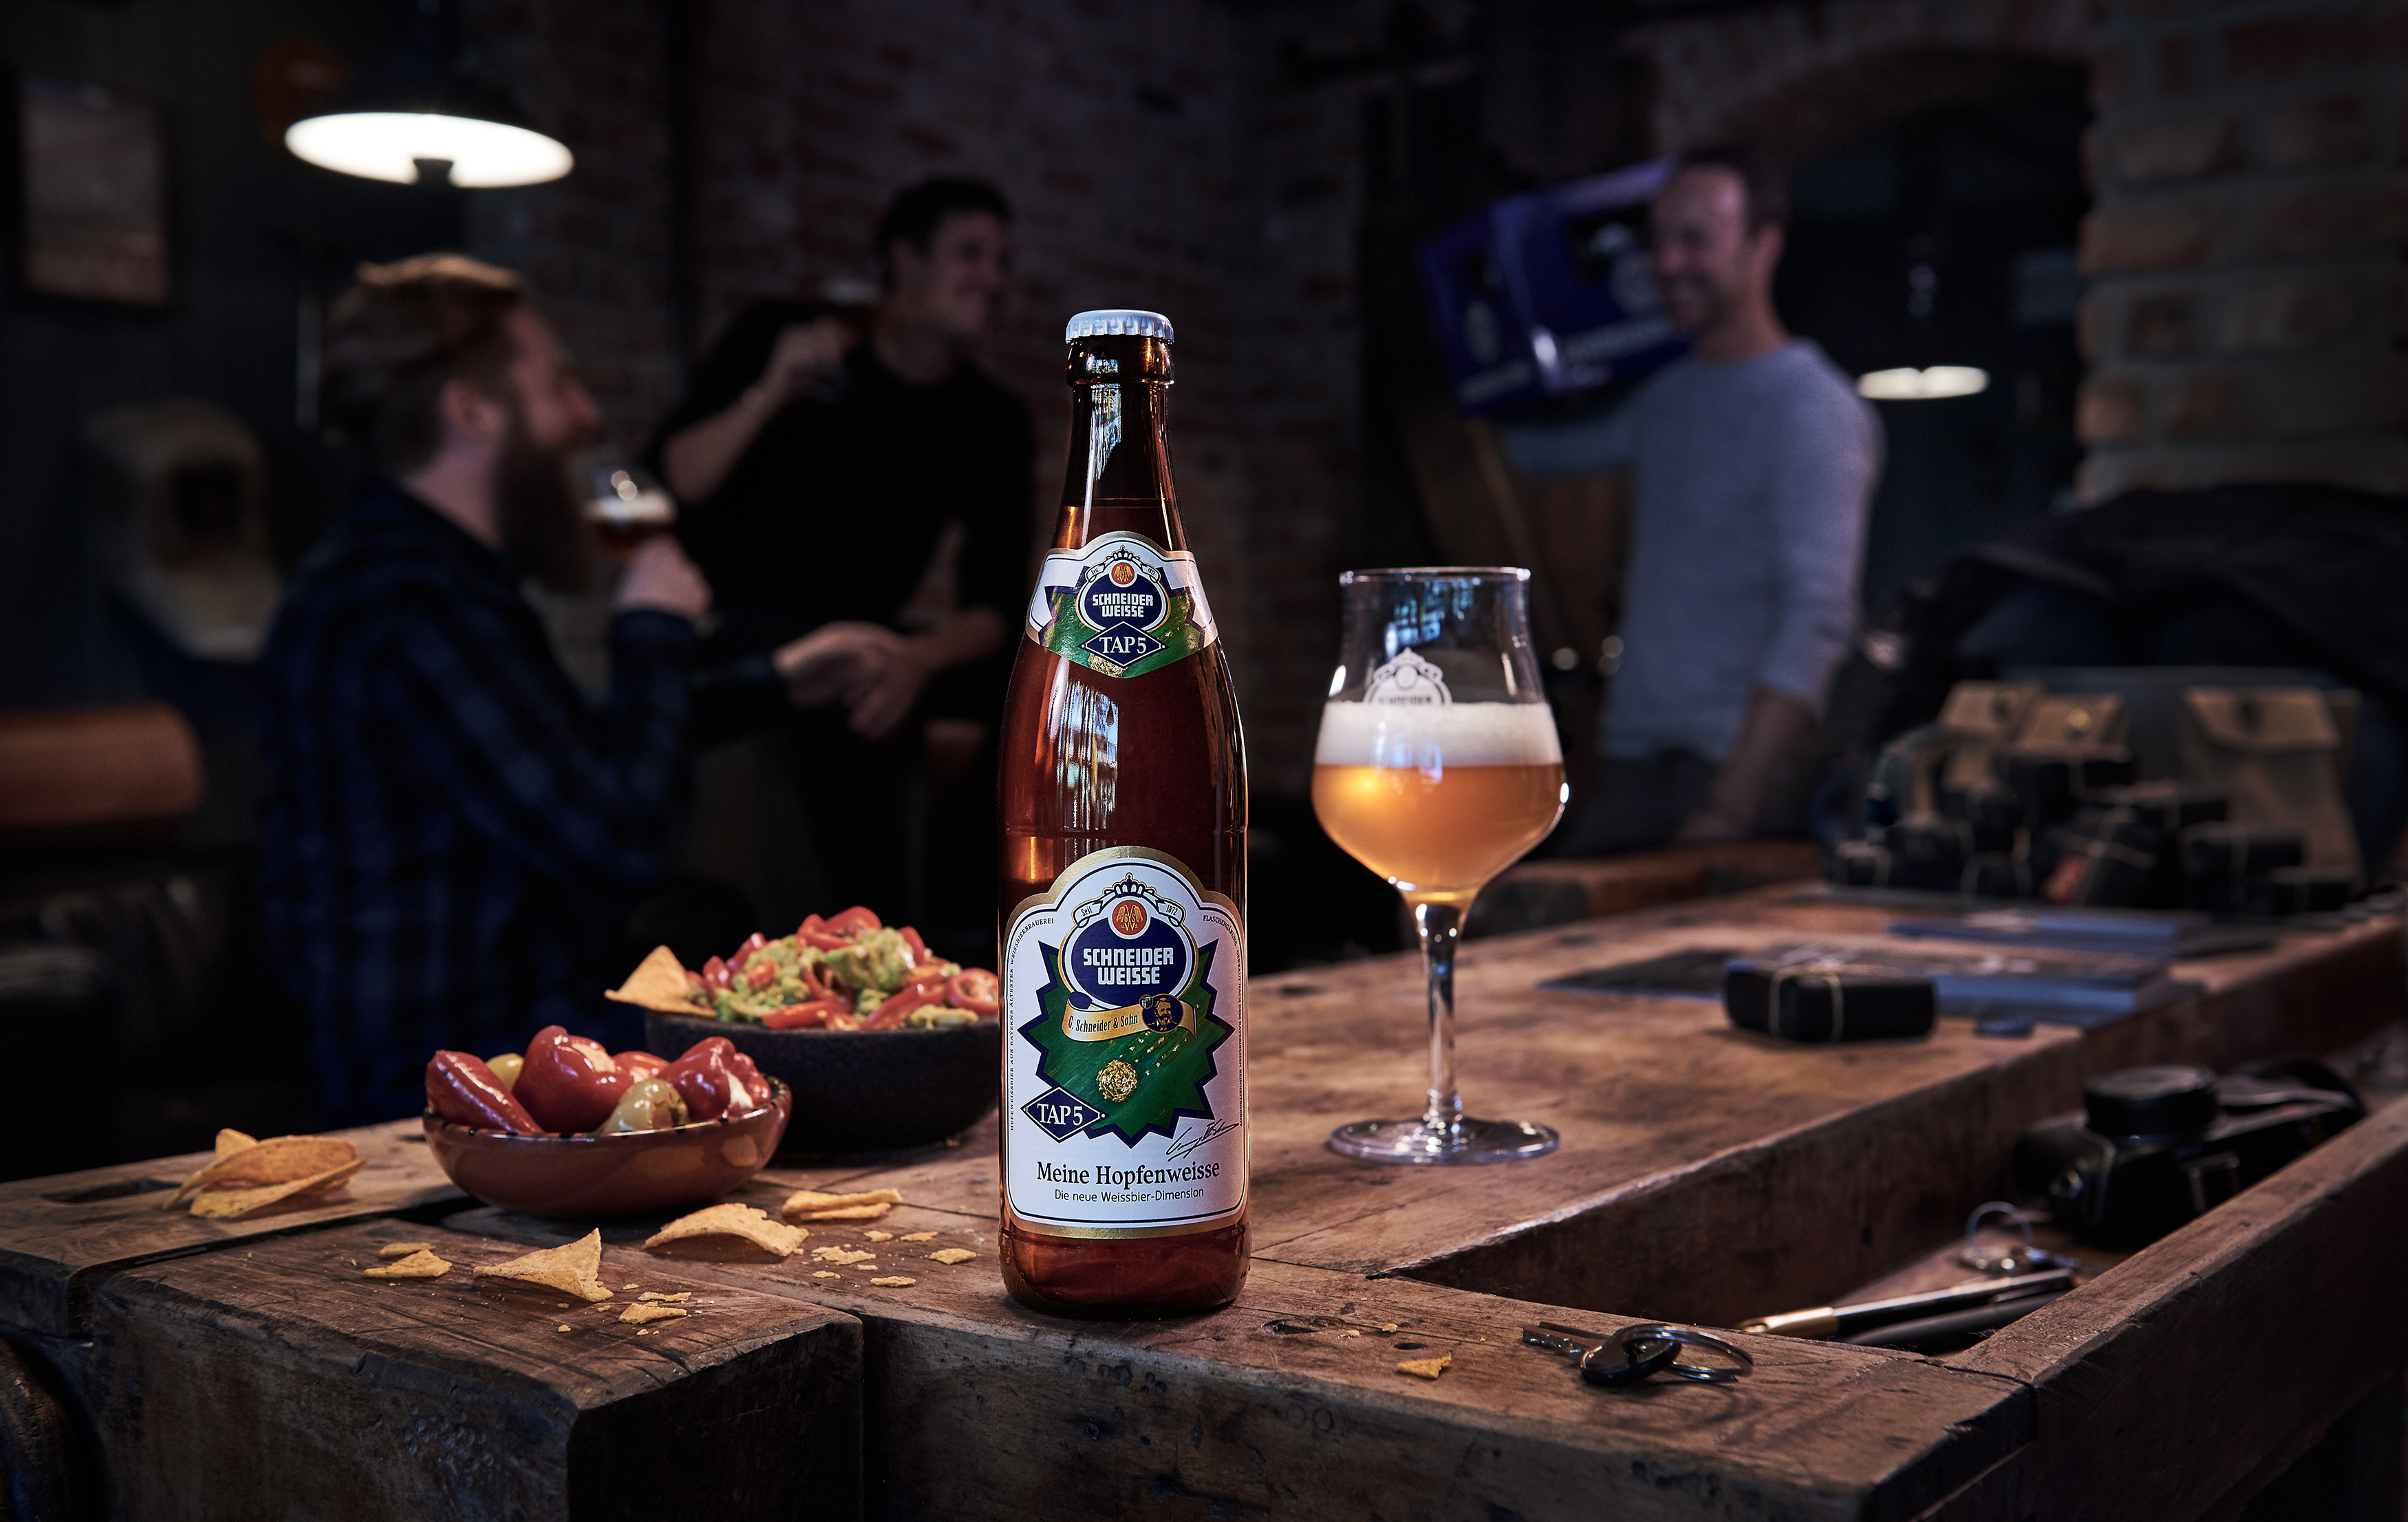 hopfenweisse wheat beer in loft with people drinking beer